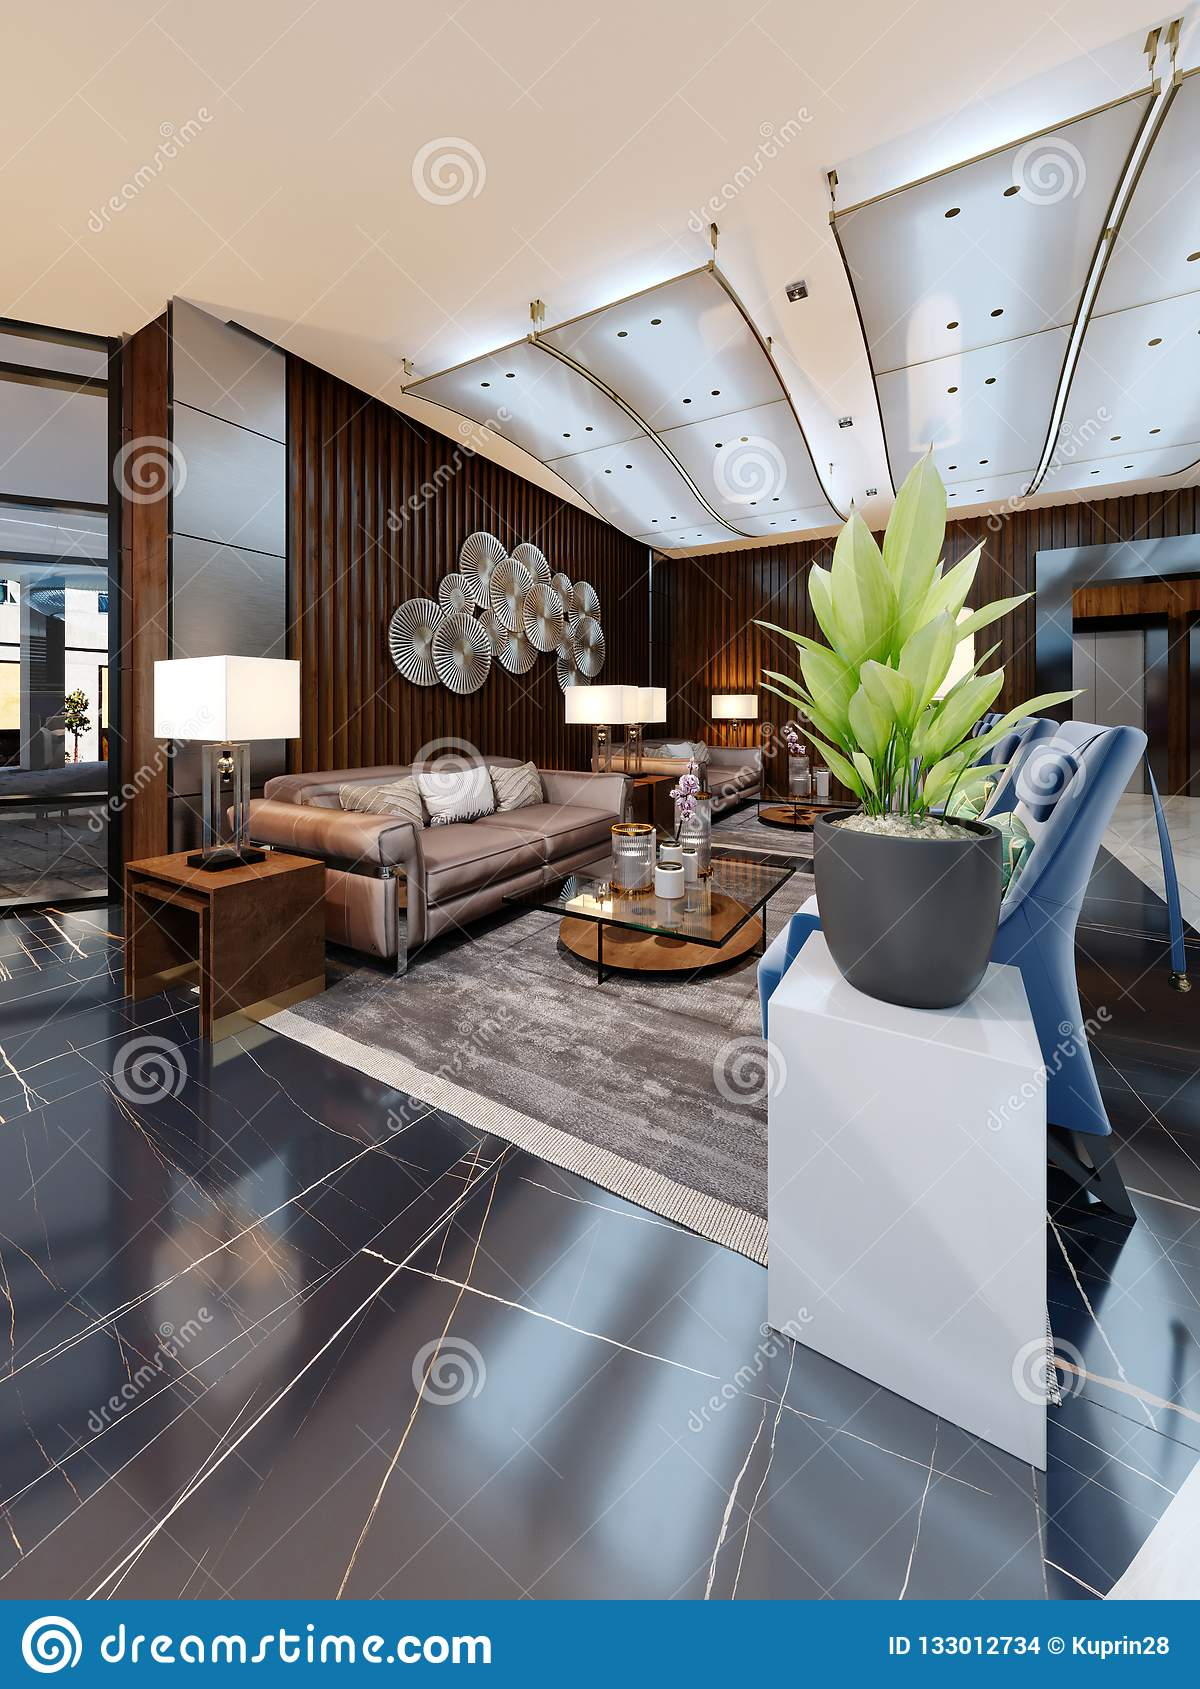 Luxury Lounge Entrance Area In Hotel With Leather Sofa And Fabric Armchair Designer White Cabinets With A Flower Pot And Wooden Stock Illustration Illustration Of Leather Flowers 133012734